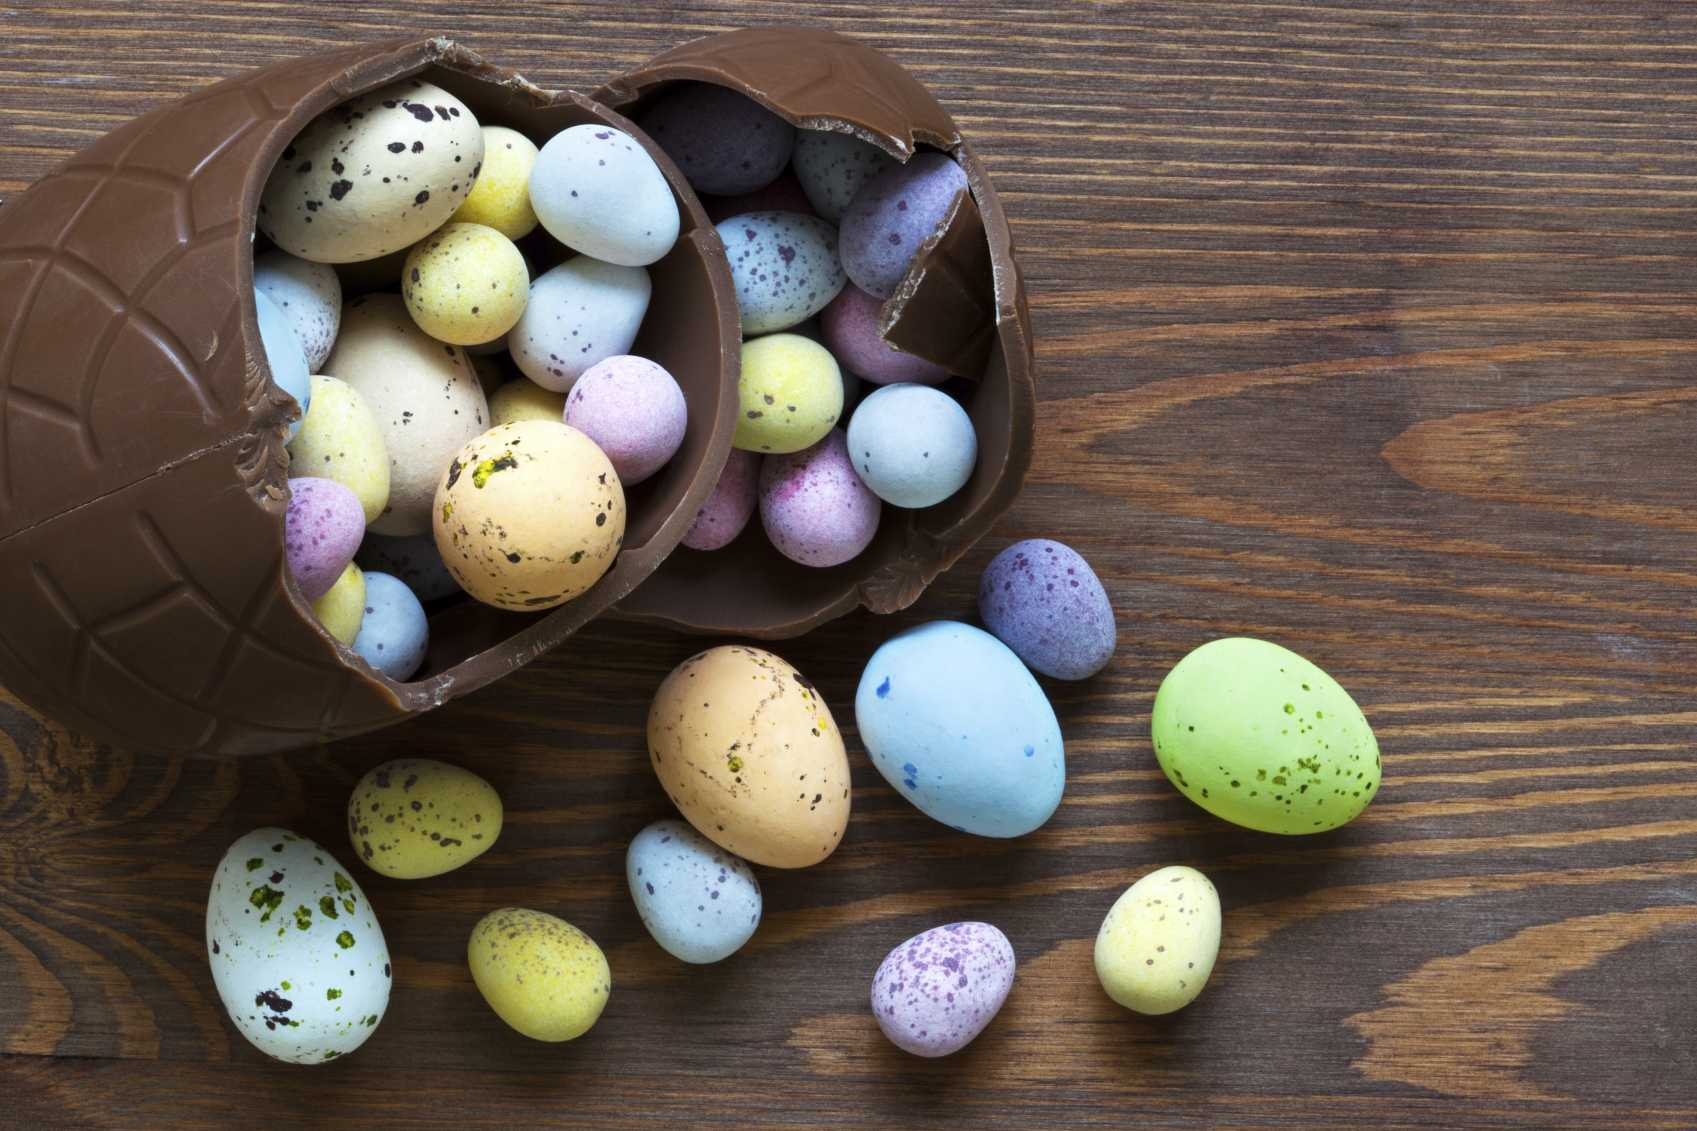 Diabetes and Easter